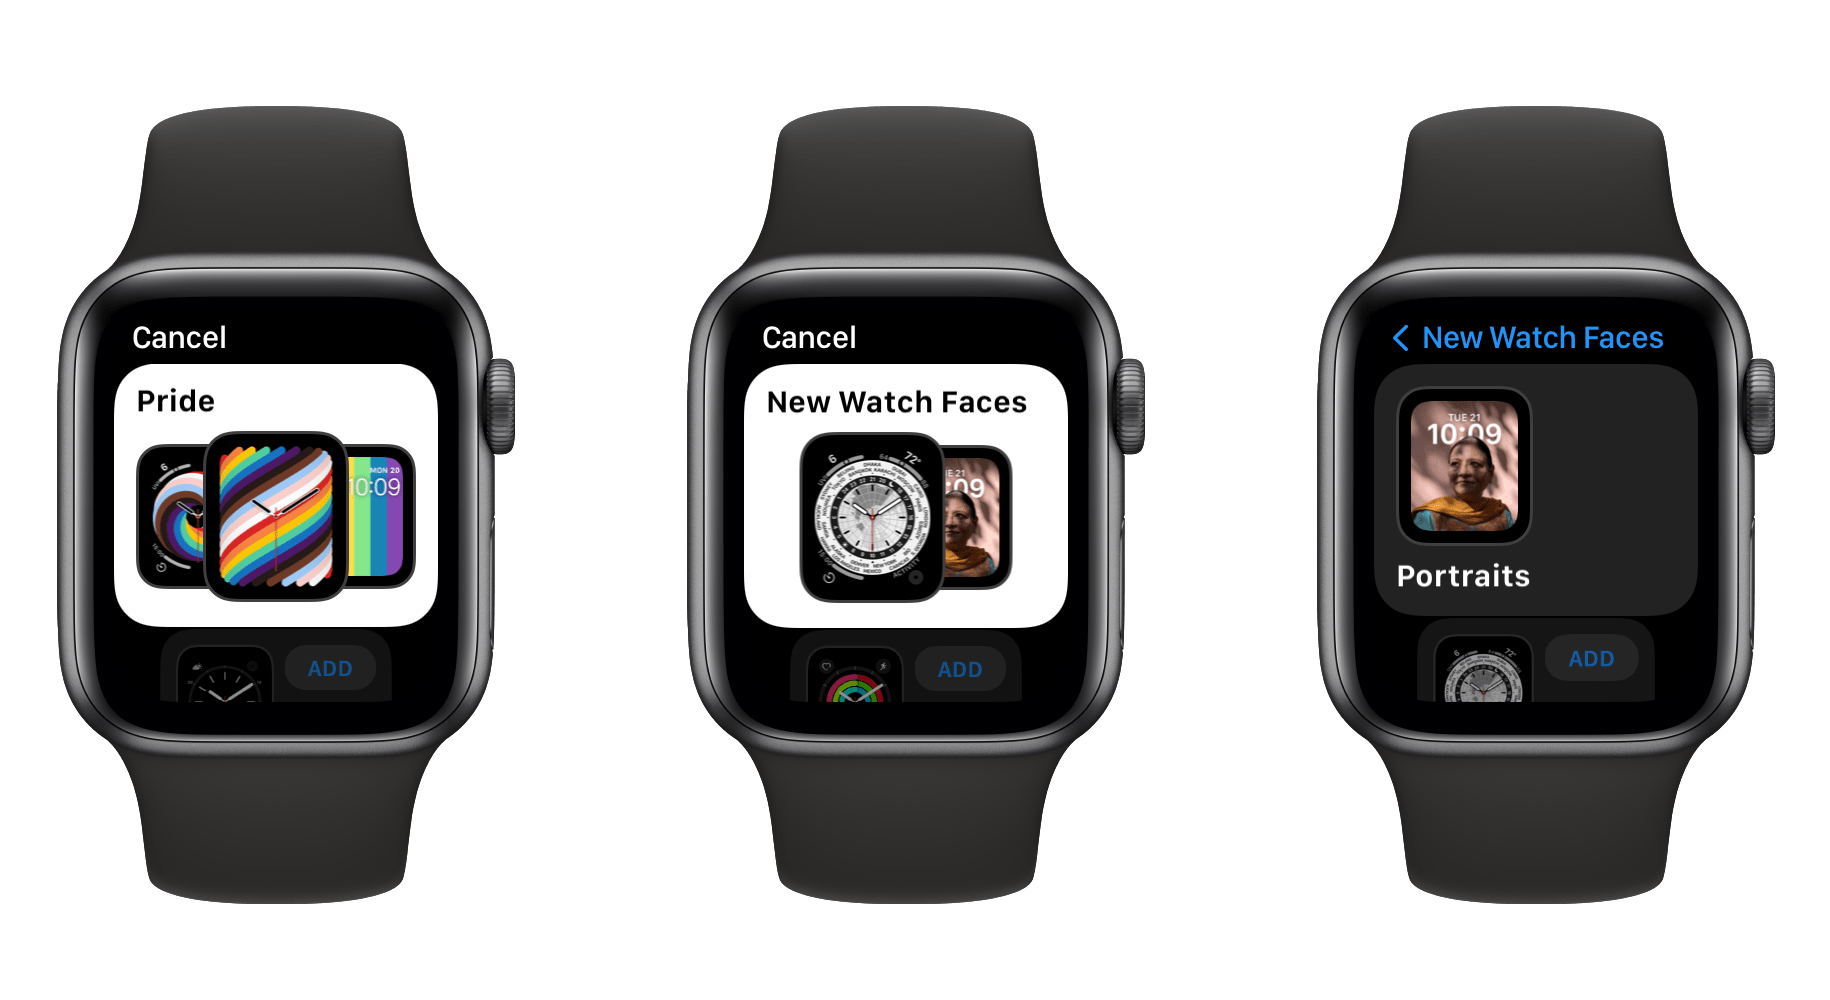 The new interface for creating watch faces in watchOS 8.